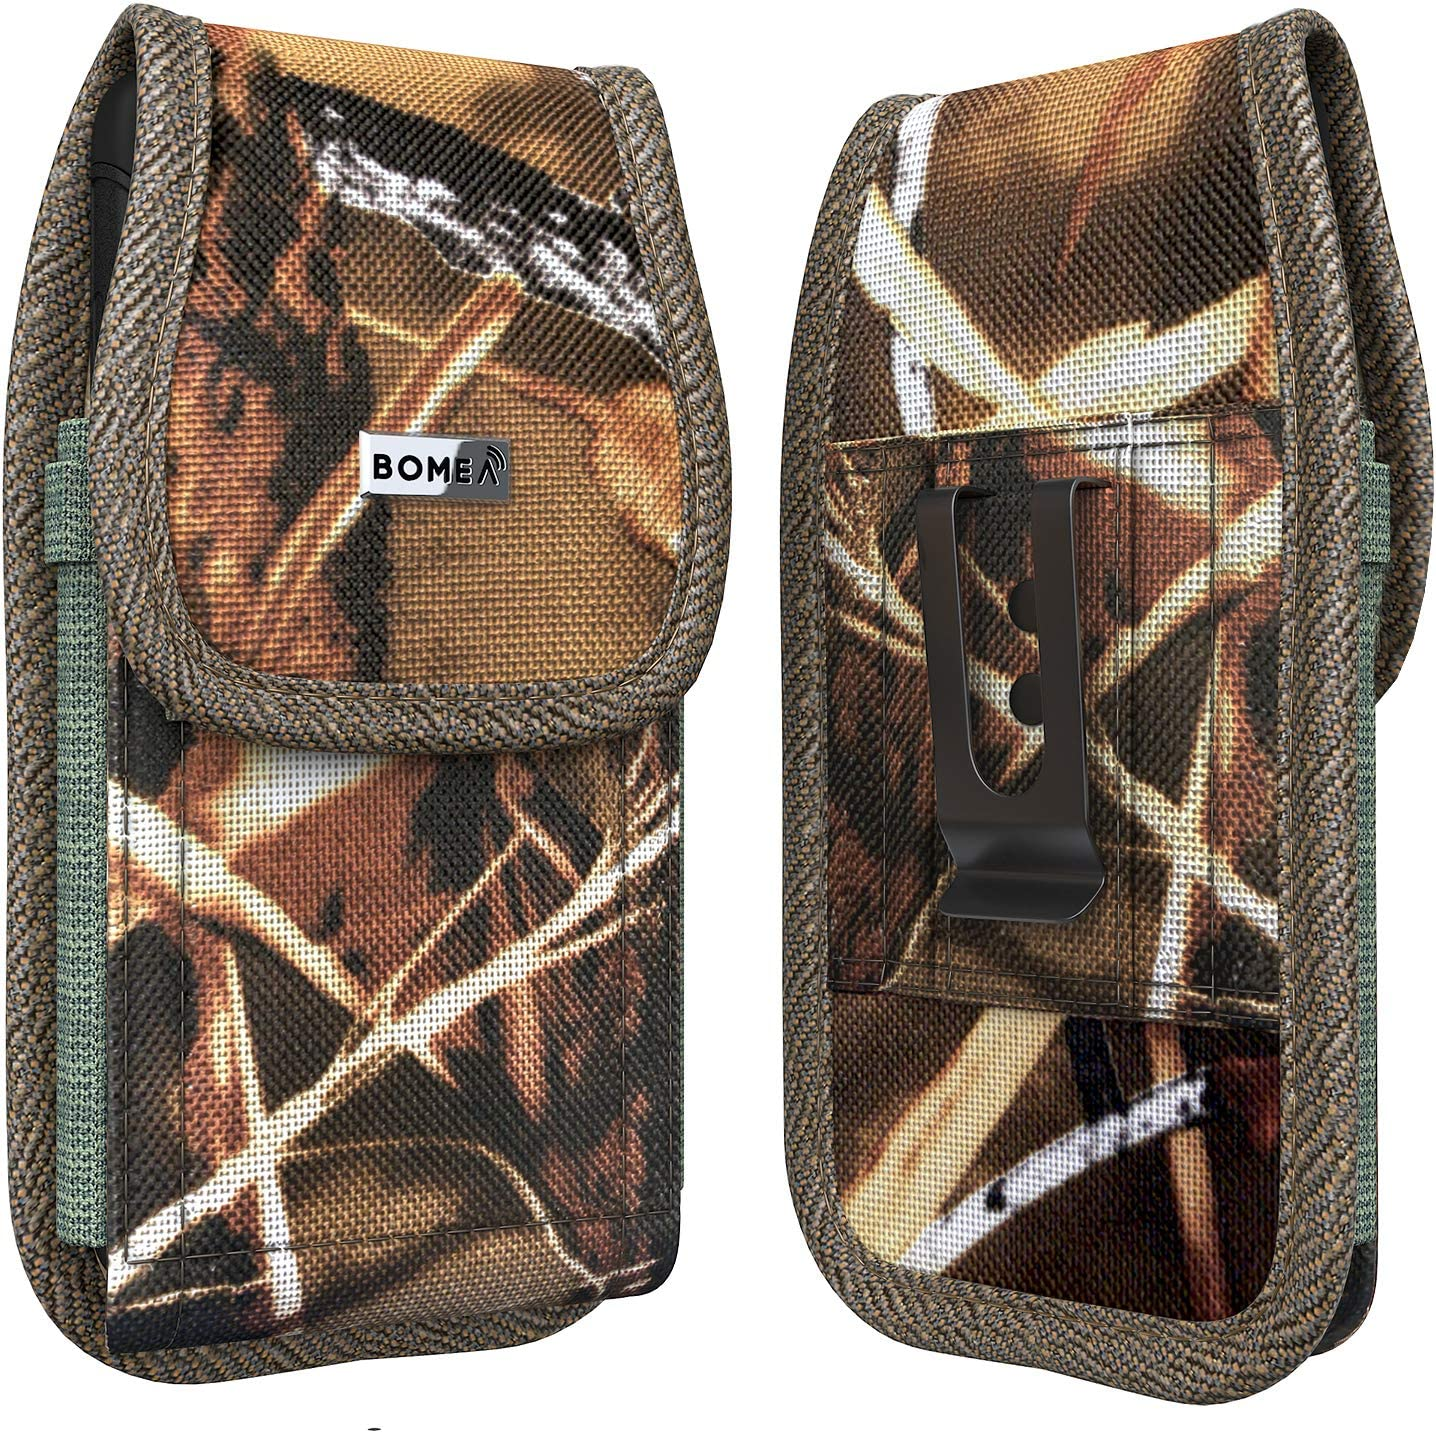 PiTau Holster Designed for iPhone 11 Pro Max, Rugged Nylon Belt Case Cell Phone Carrying Pouch Holder Compatible with iPhone 11 Pro Max /Xs Max/6 Plus/6s Plus/7 Plus/8 Plus (Fits with Case on) Camo